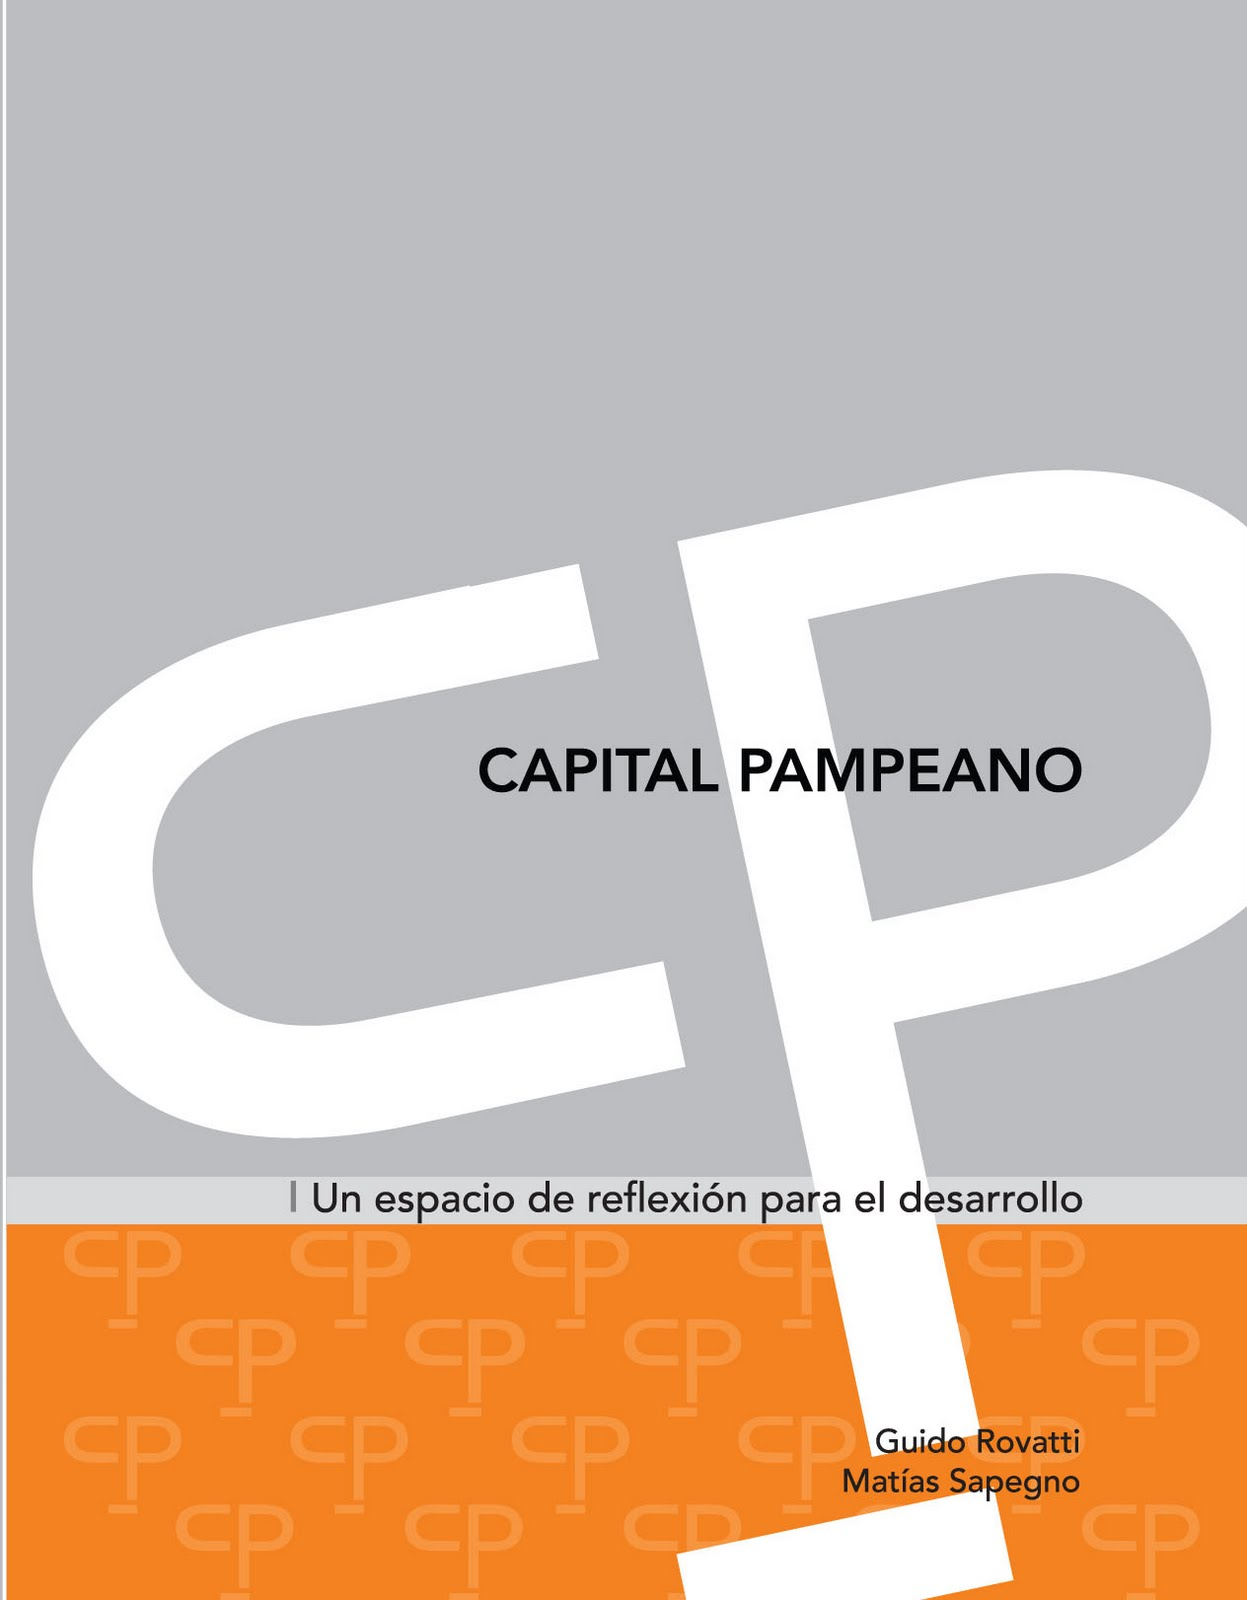 El Capital Libro Salió El Libro Capital Pampeano Pobres Ideas